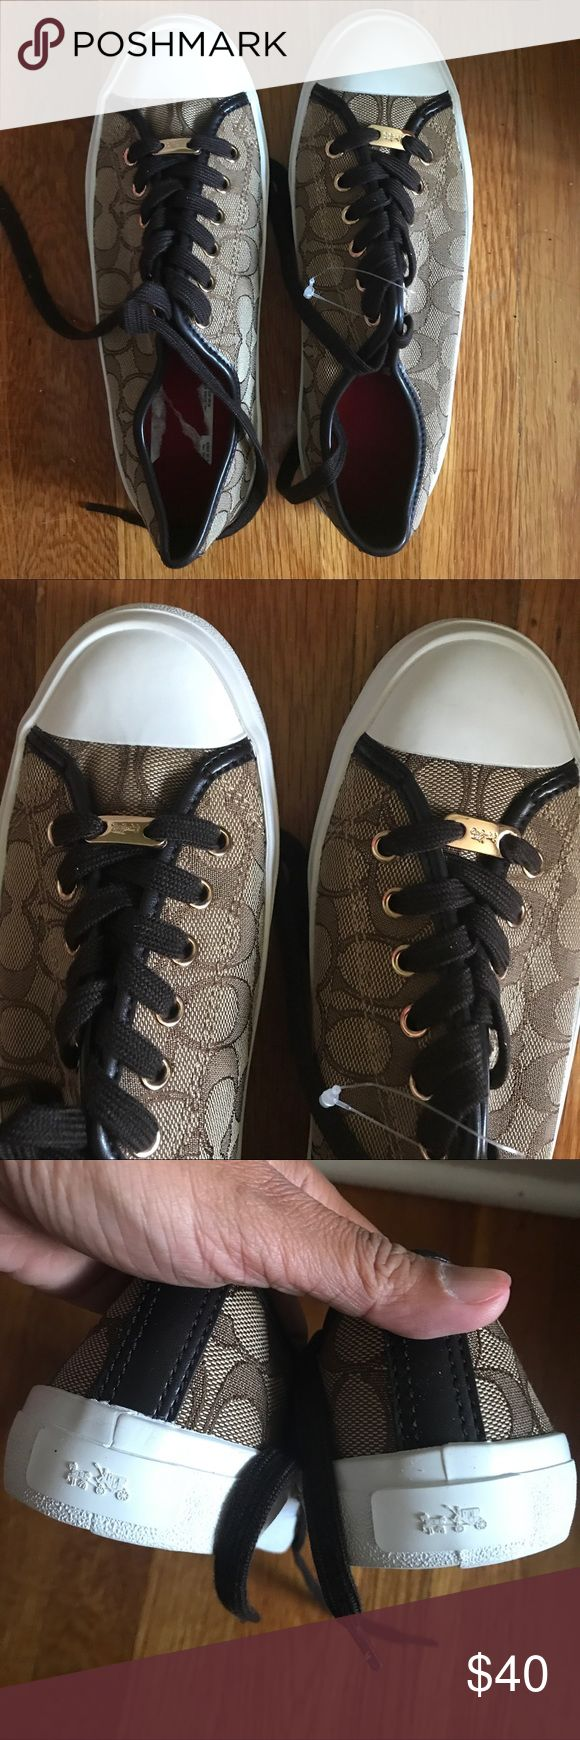 Brand new Coach Sneakers 8.5 Authentic Brand new Coach sneakers in brown. Make me an offer! Coach Shoes Sneakers